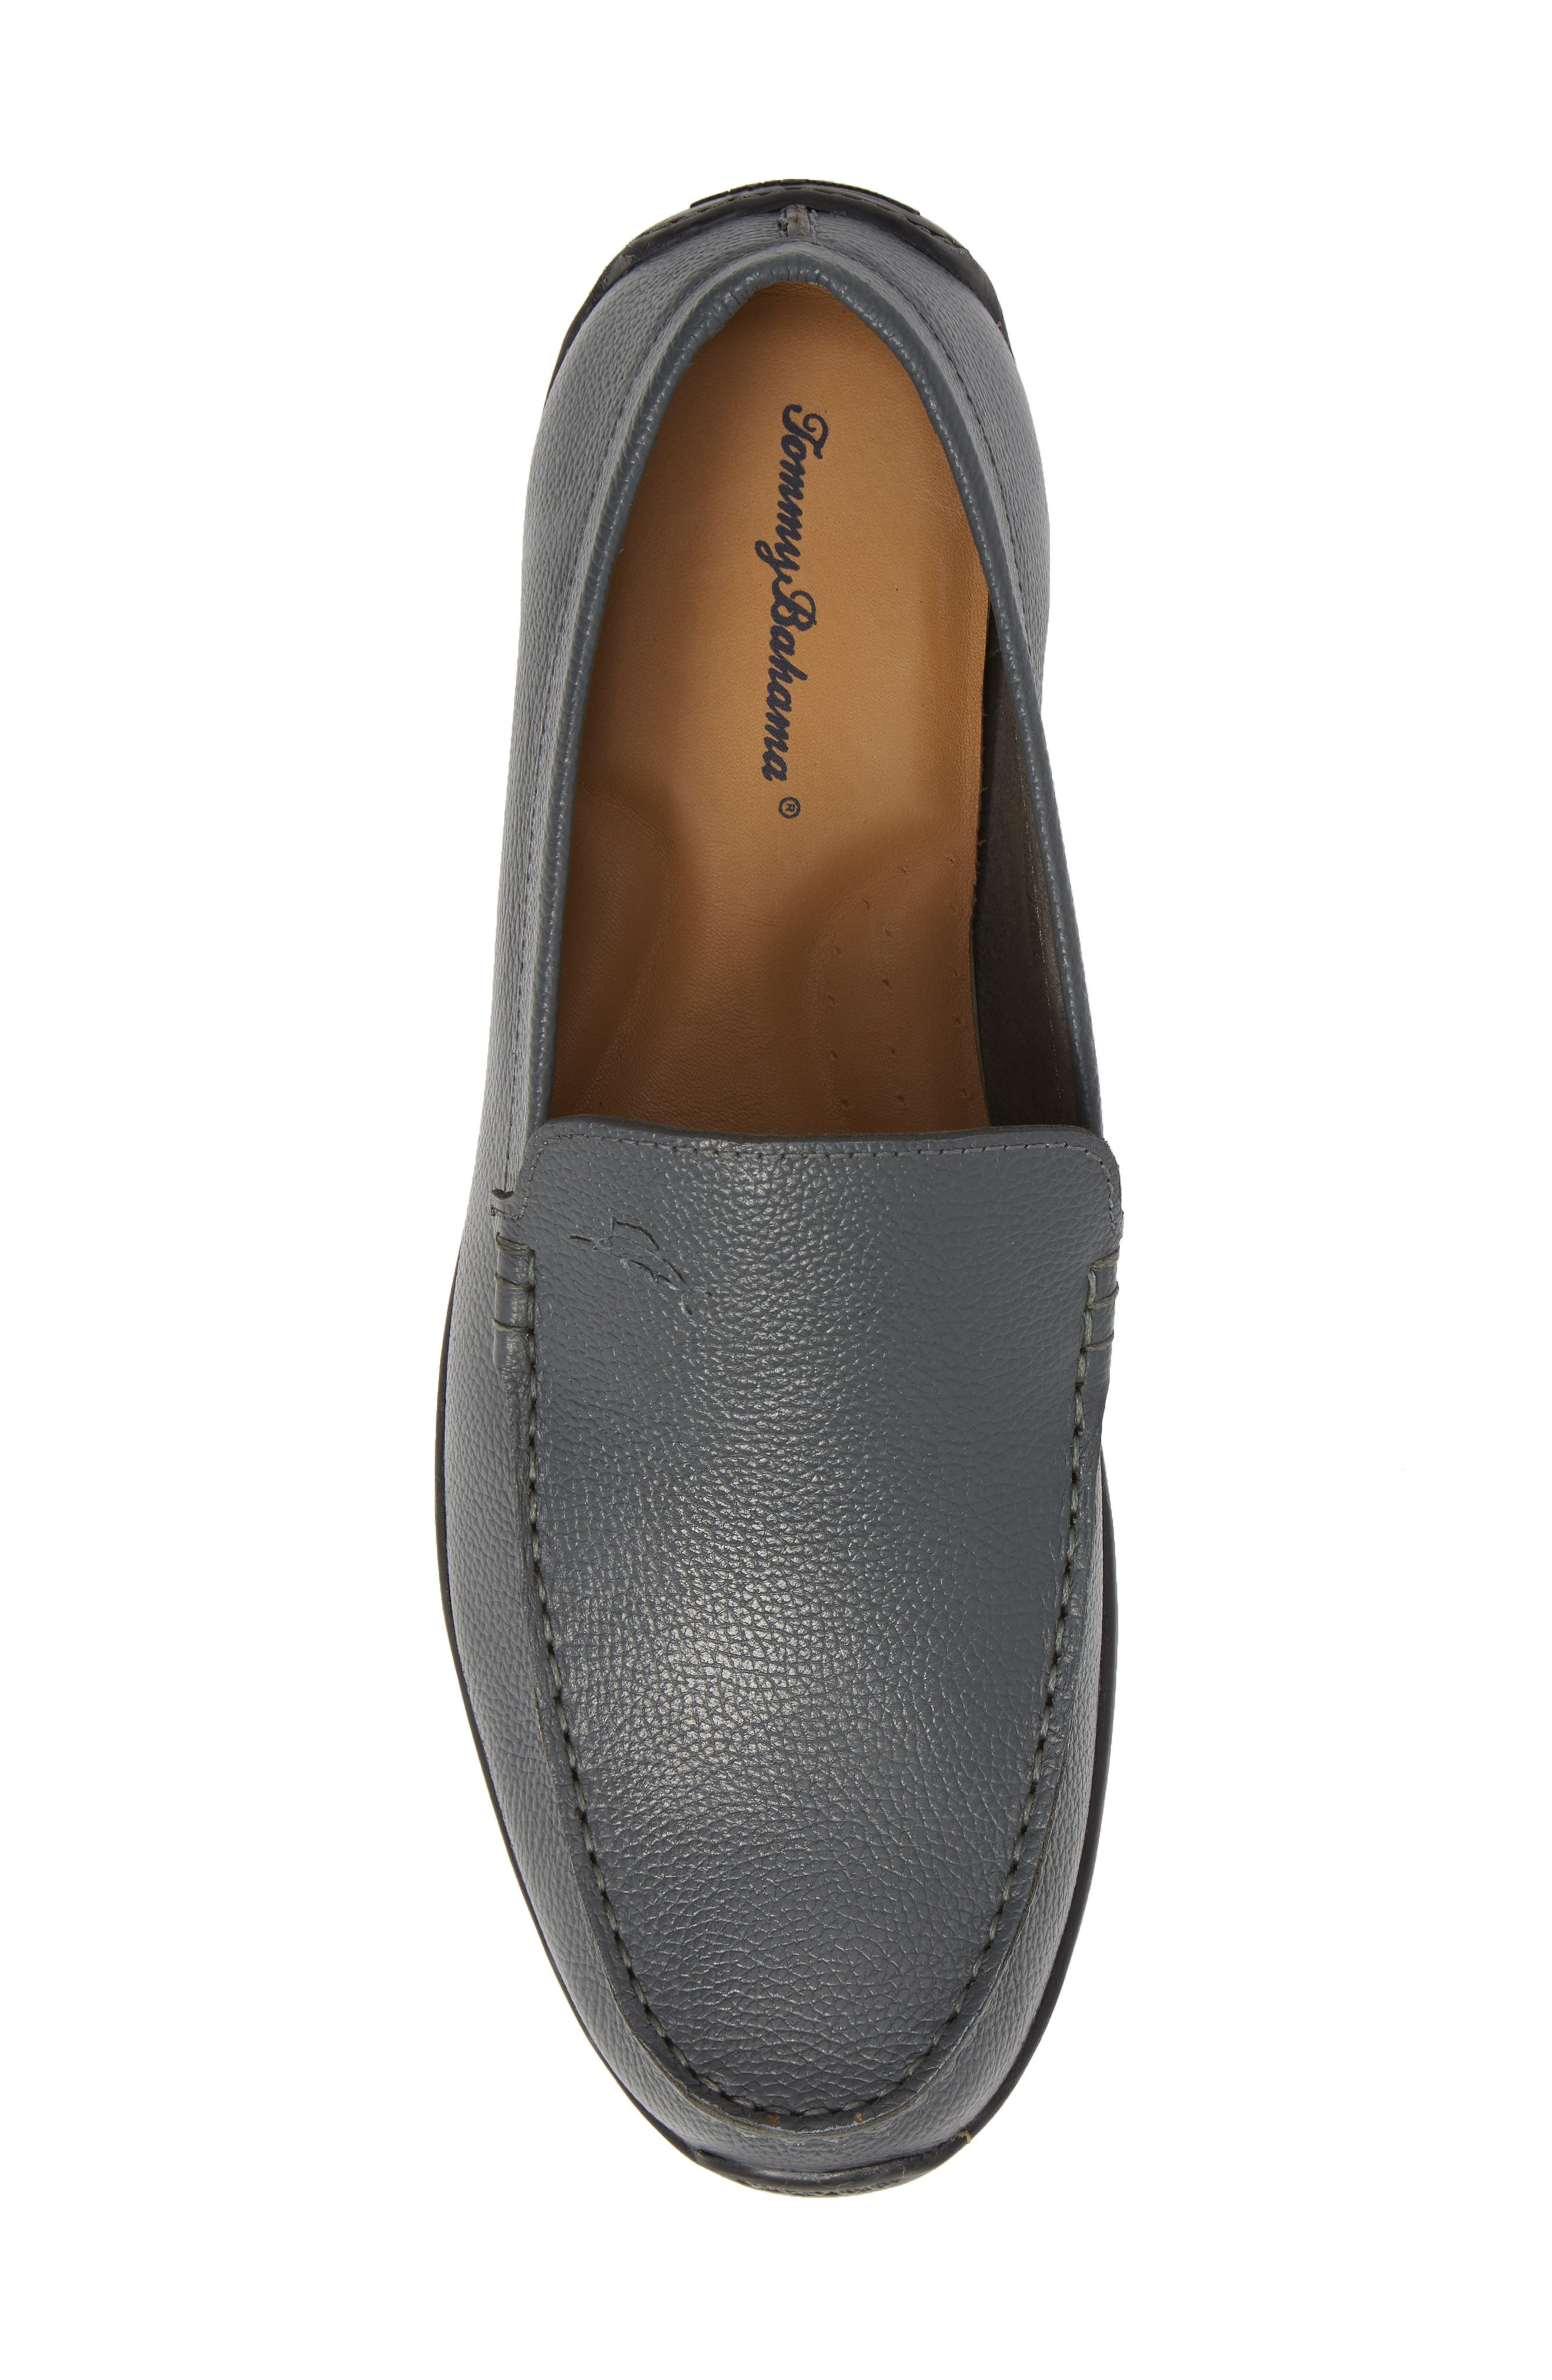 Orion Venetian Loafer,                             Alternate thumbnail 5, color,                             GREY TUMBLED LEATHER